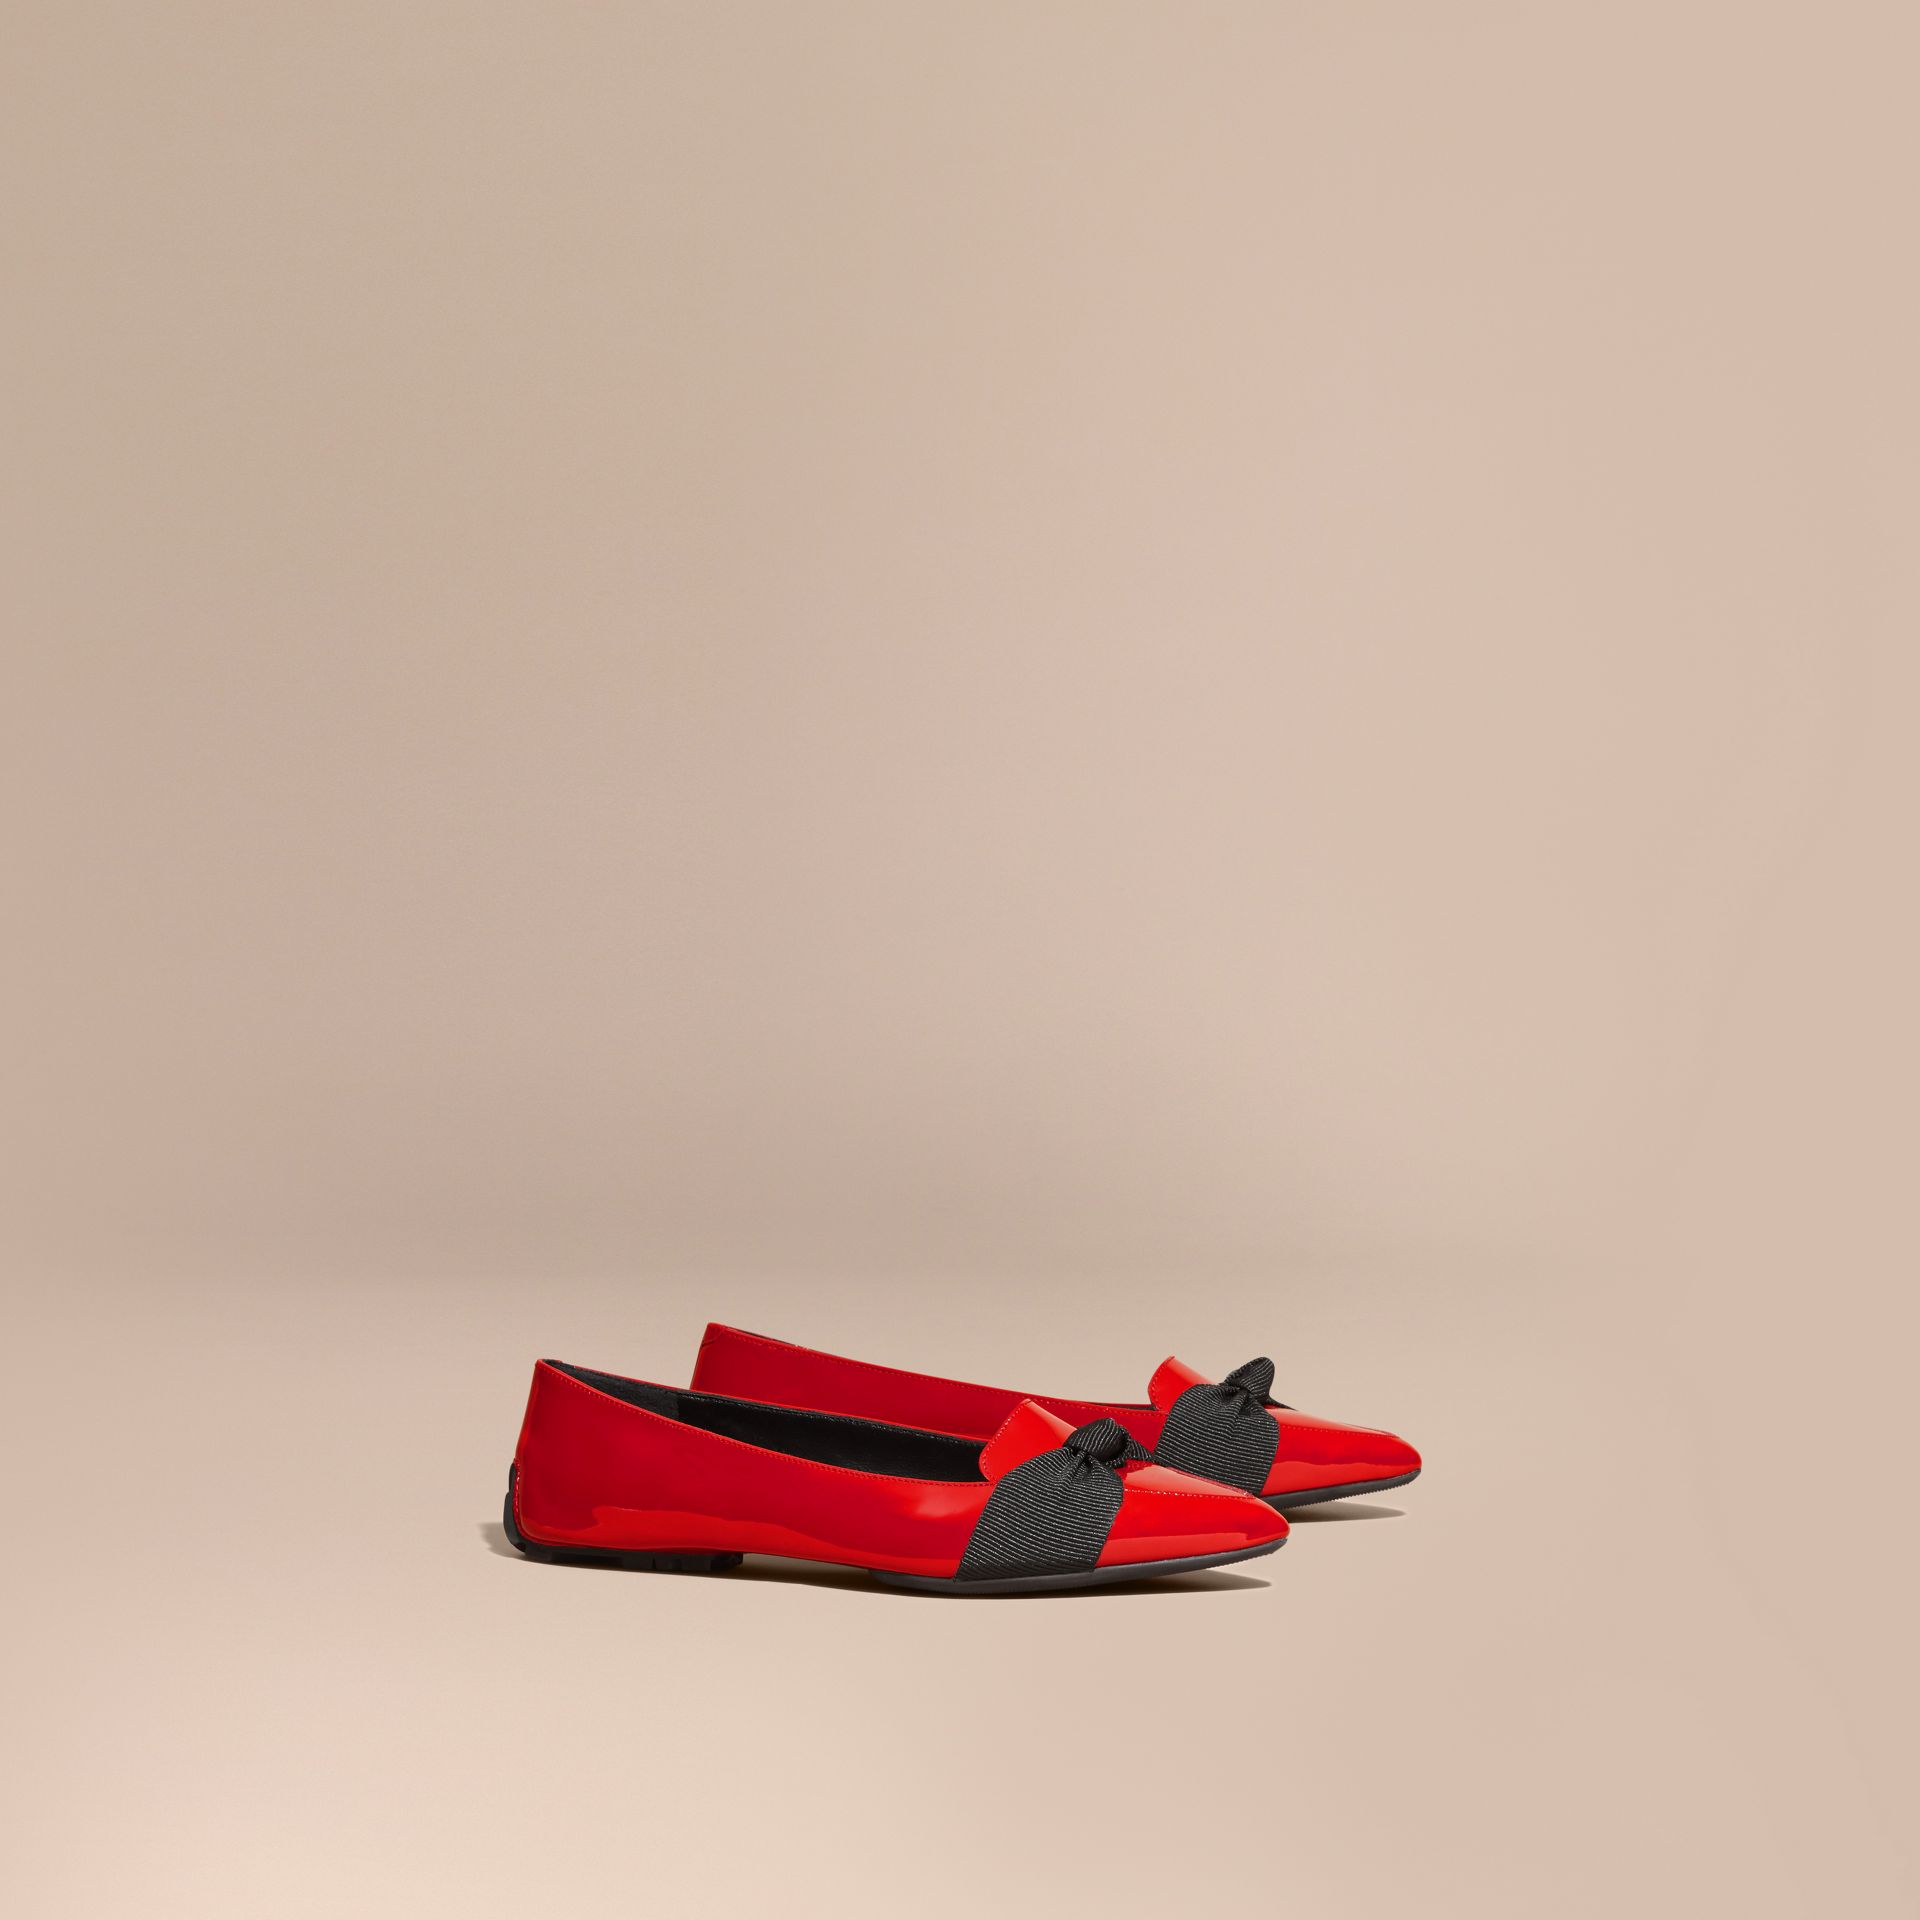 Peony red Patent Leather Loafers with Grosgrain Bow Peony Red - gallery image 1